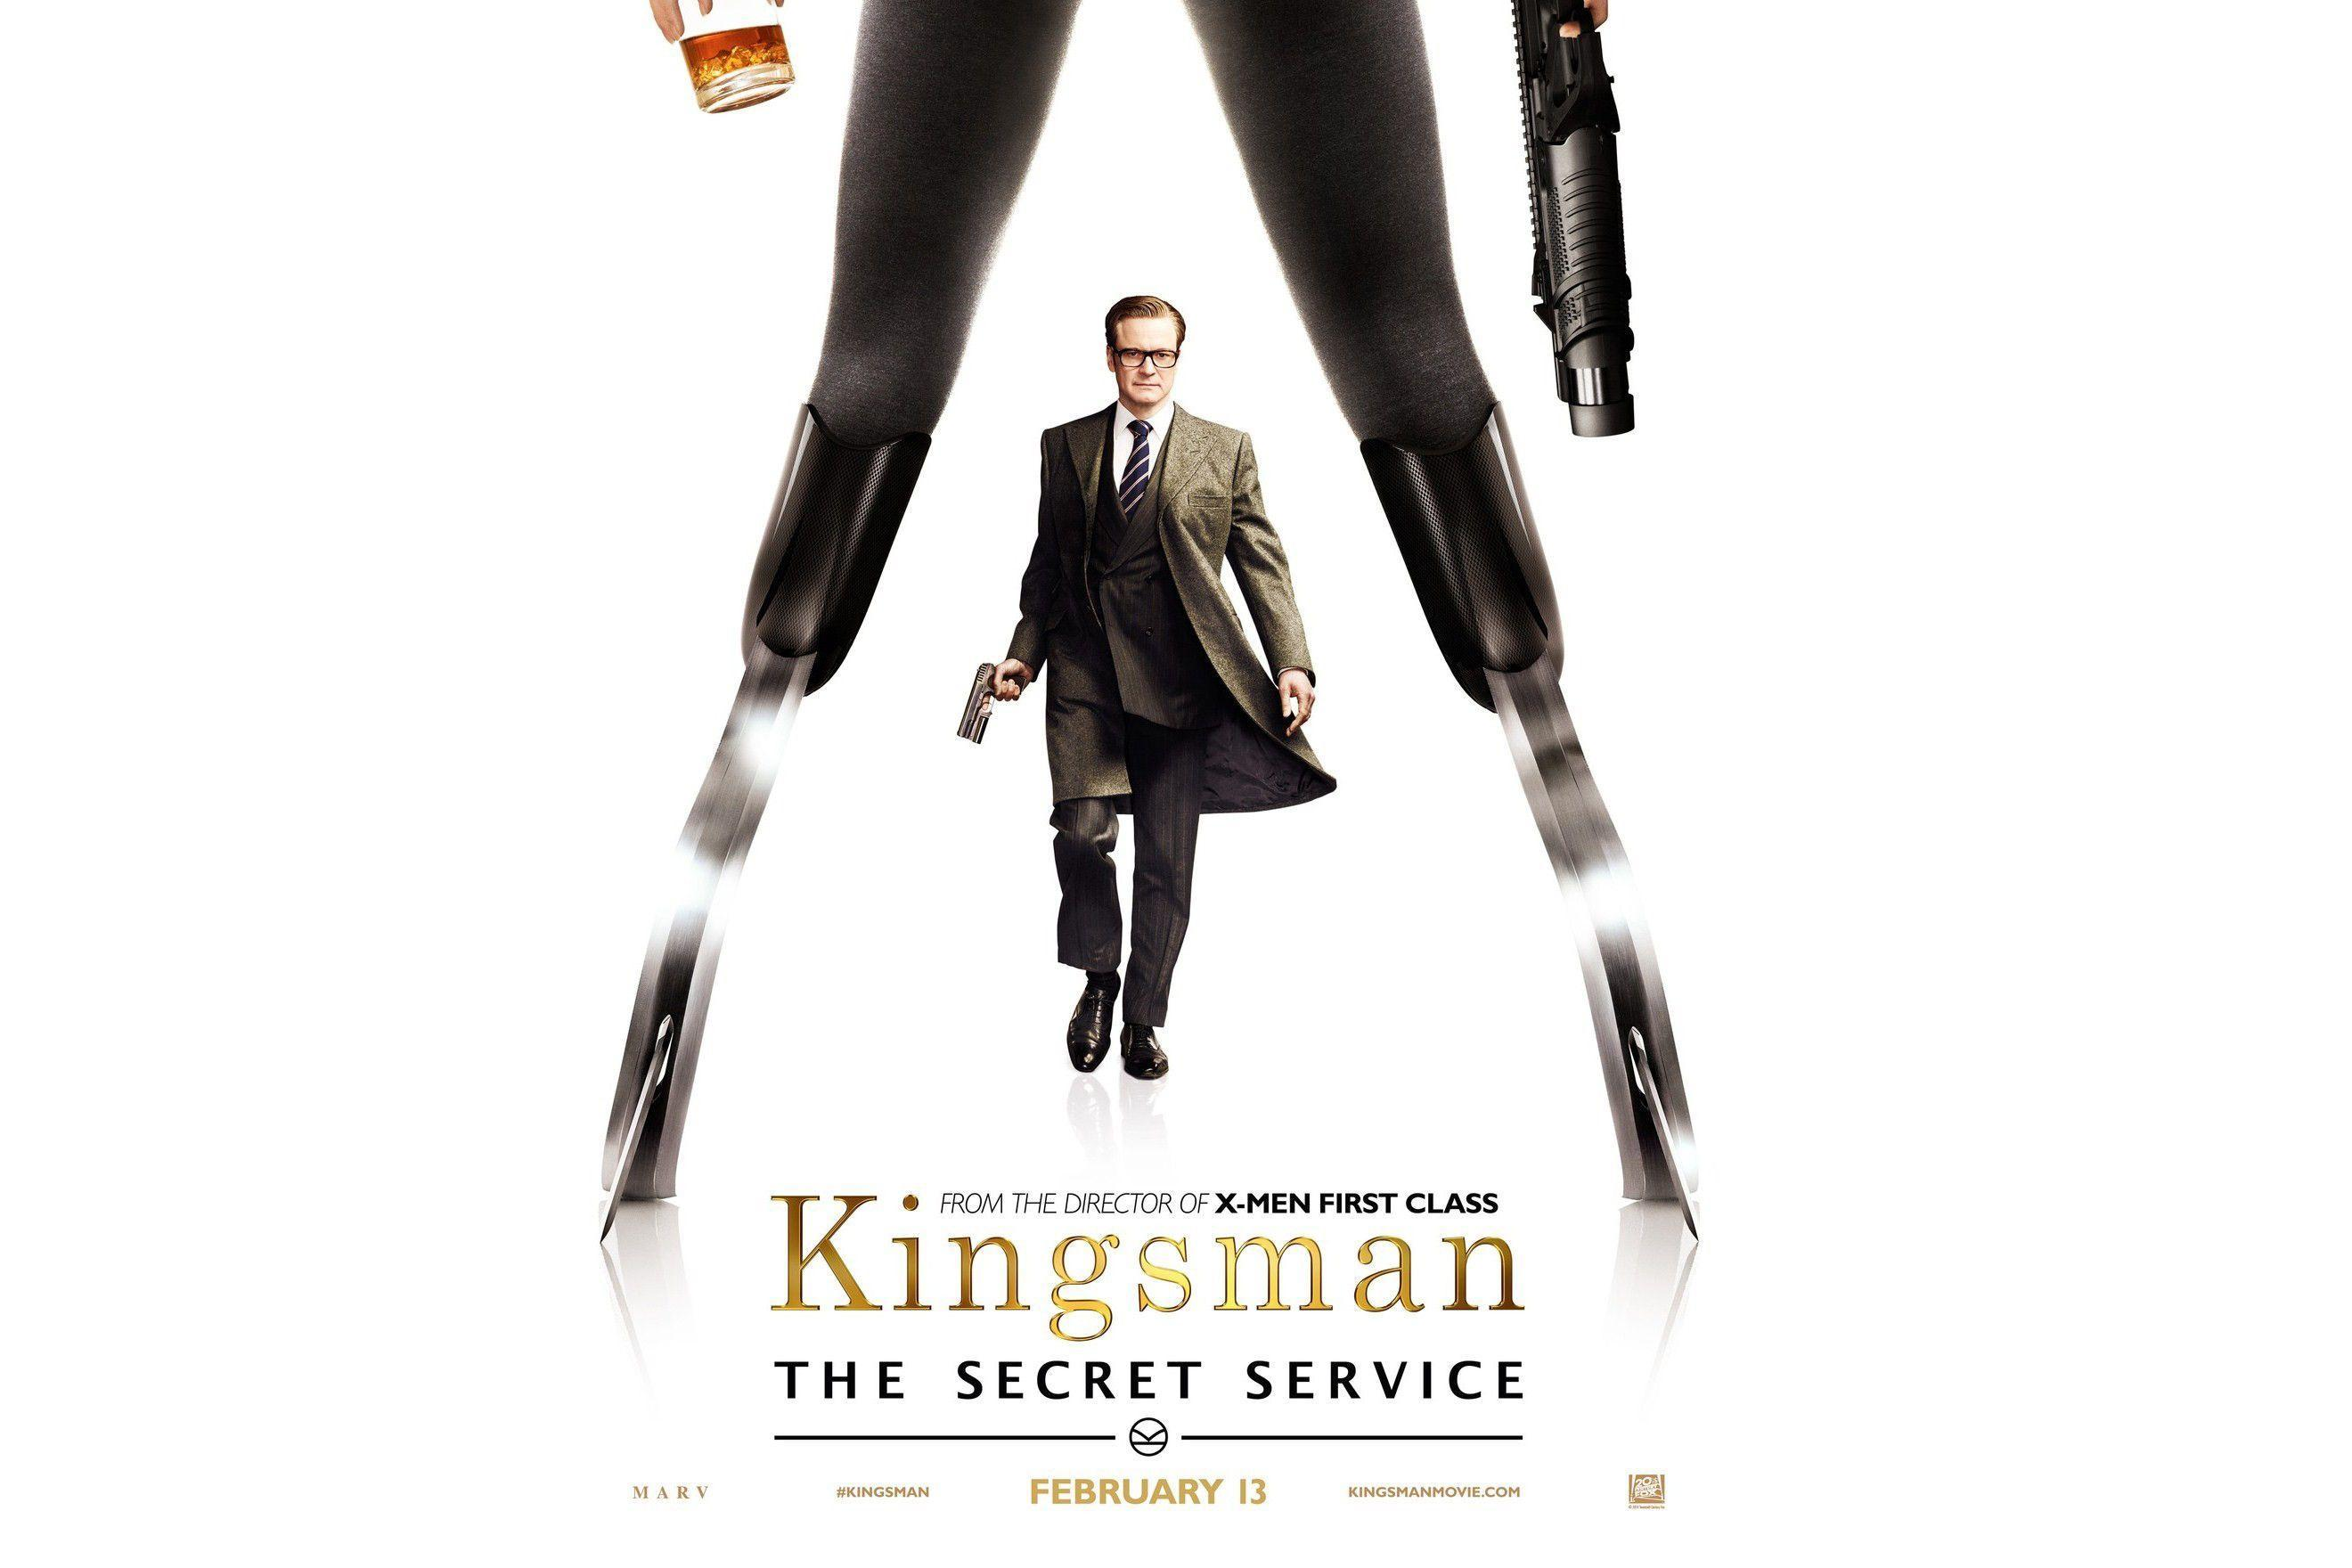 kingsman the secret service wallpaper 1